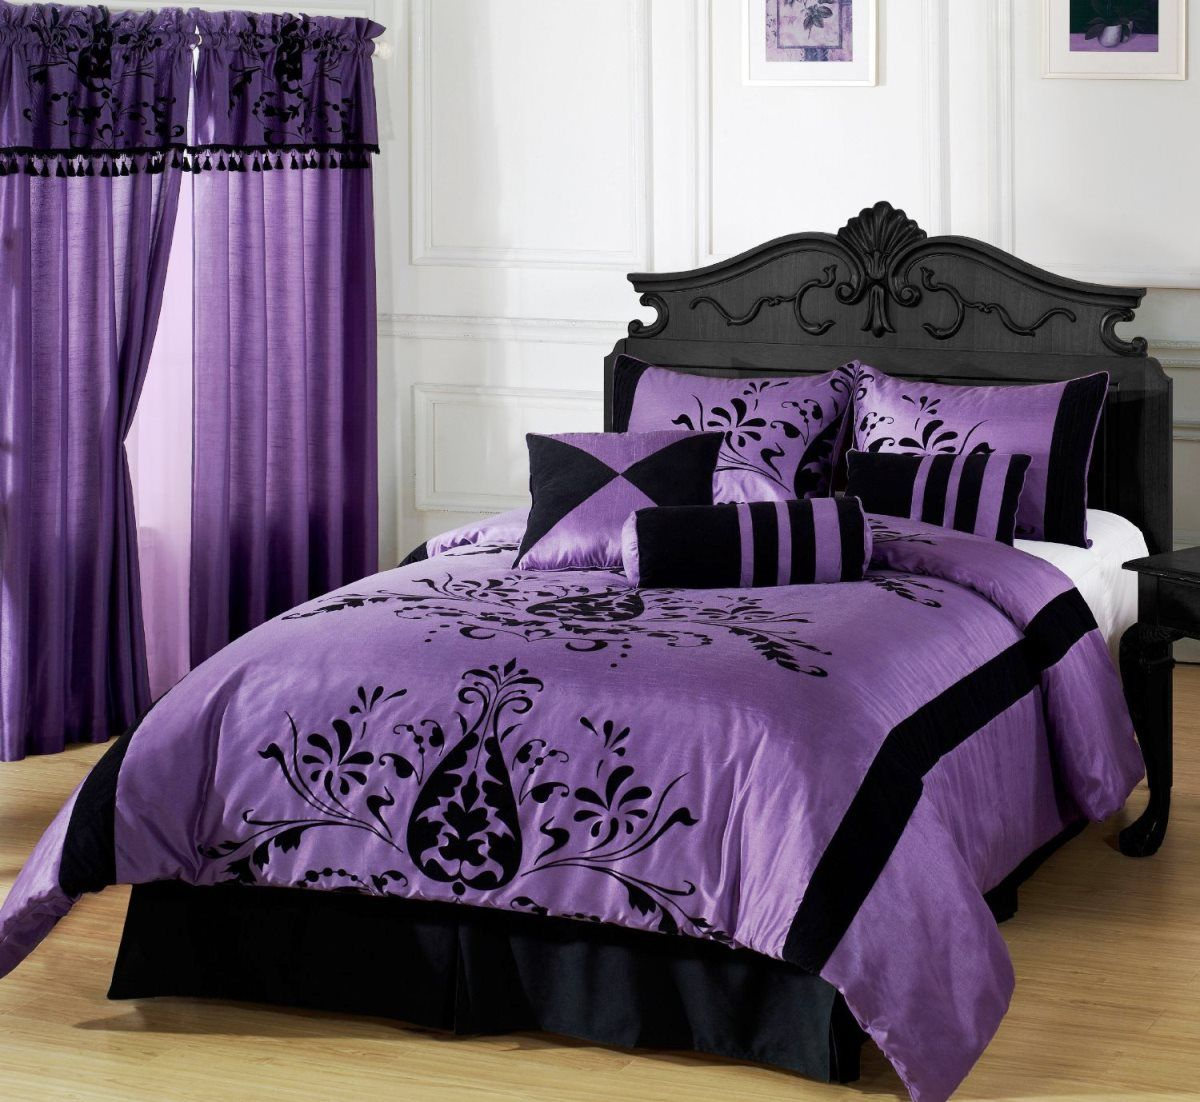 Superieur Simple Black White And Purple Bedroom Ideas